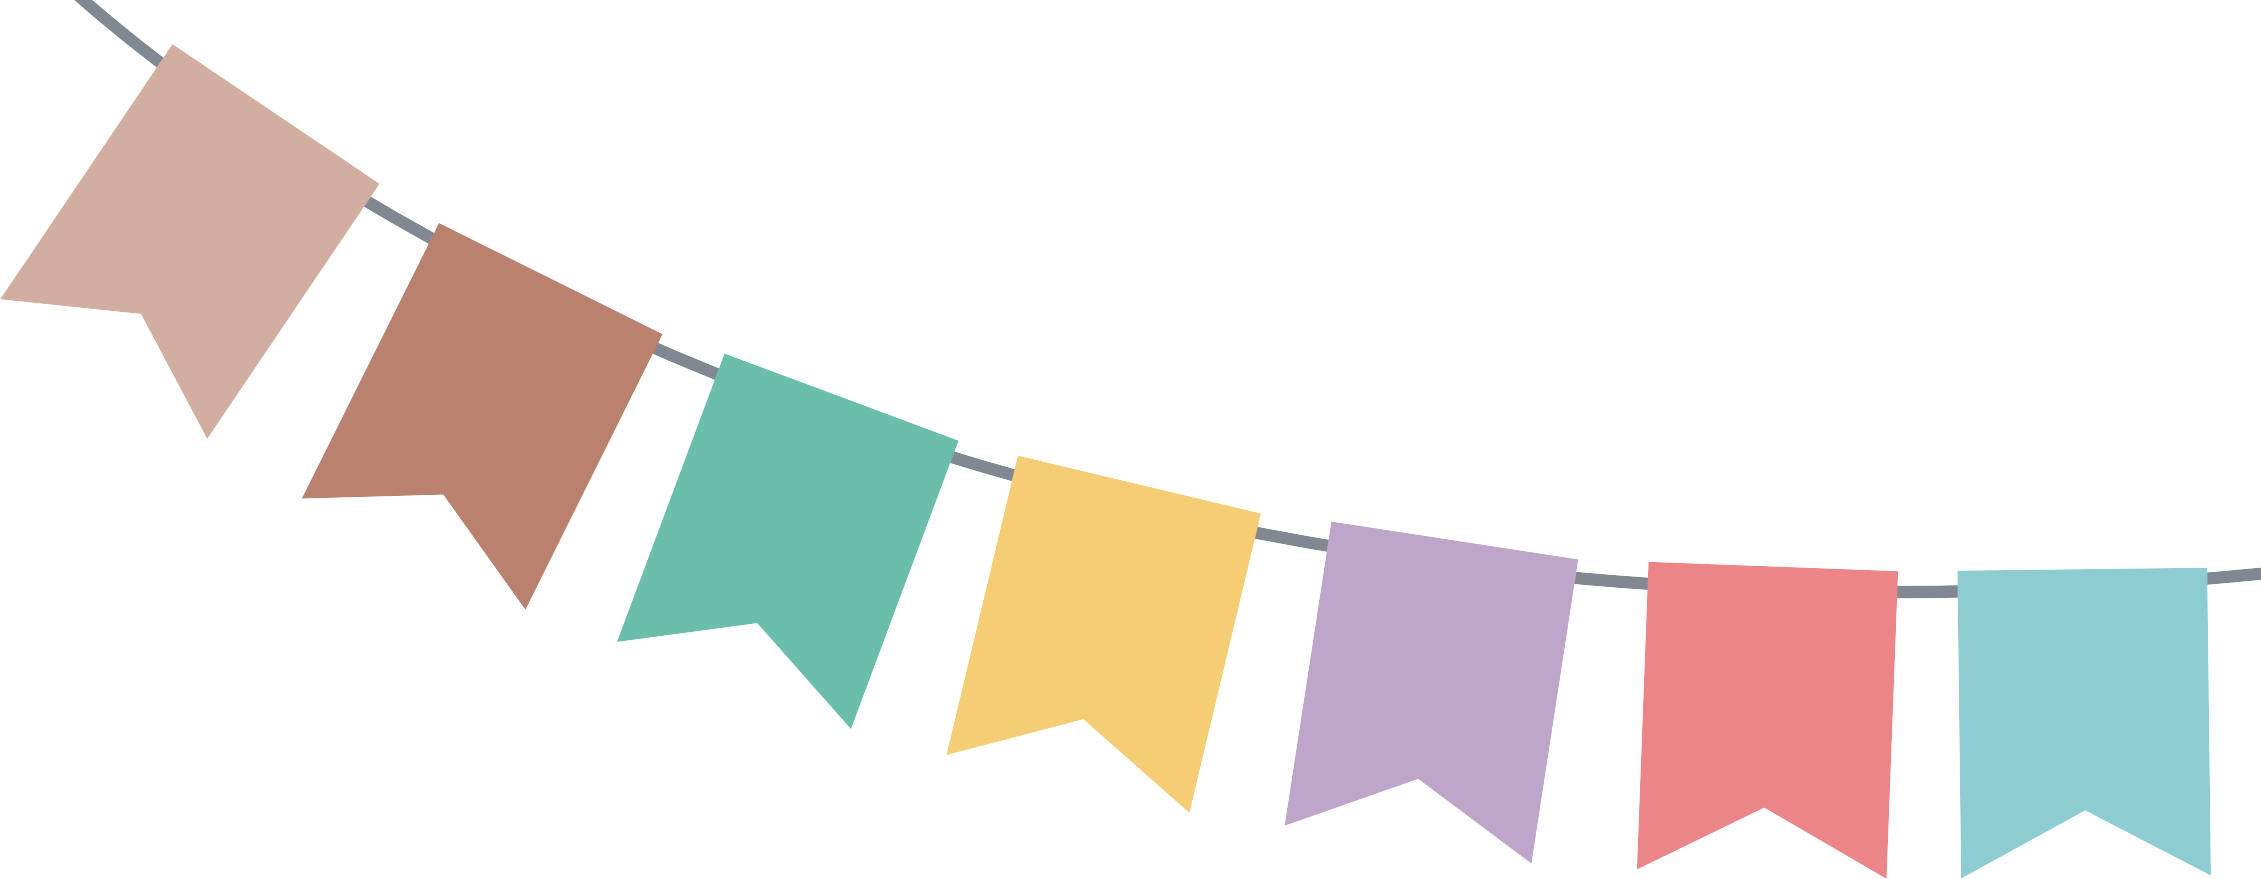 2261x879 15 Bunting Vector Party Banner For Free Download On Mbtskoudsalg